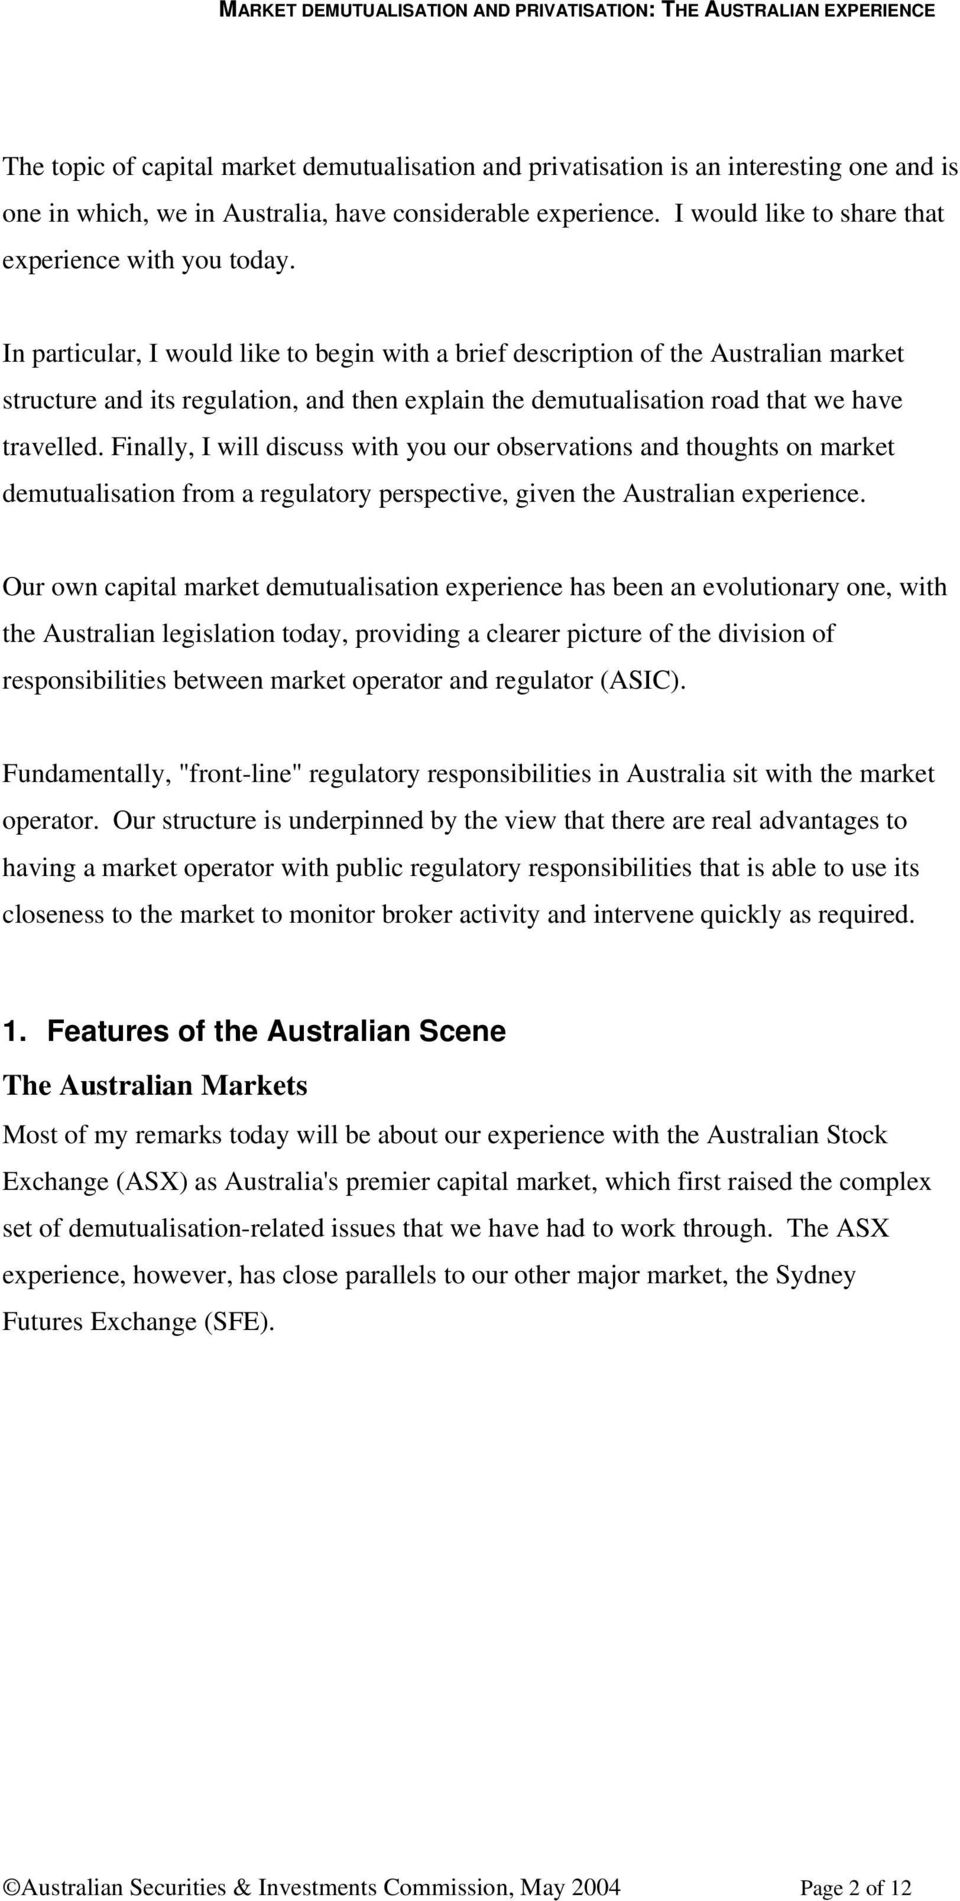 In particular, I would like to begin with a brief description of the Australian market structure and its regulation, and then explain the demutualisation road that we have travelled.